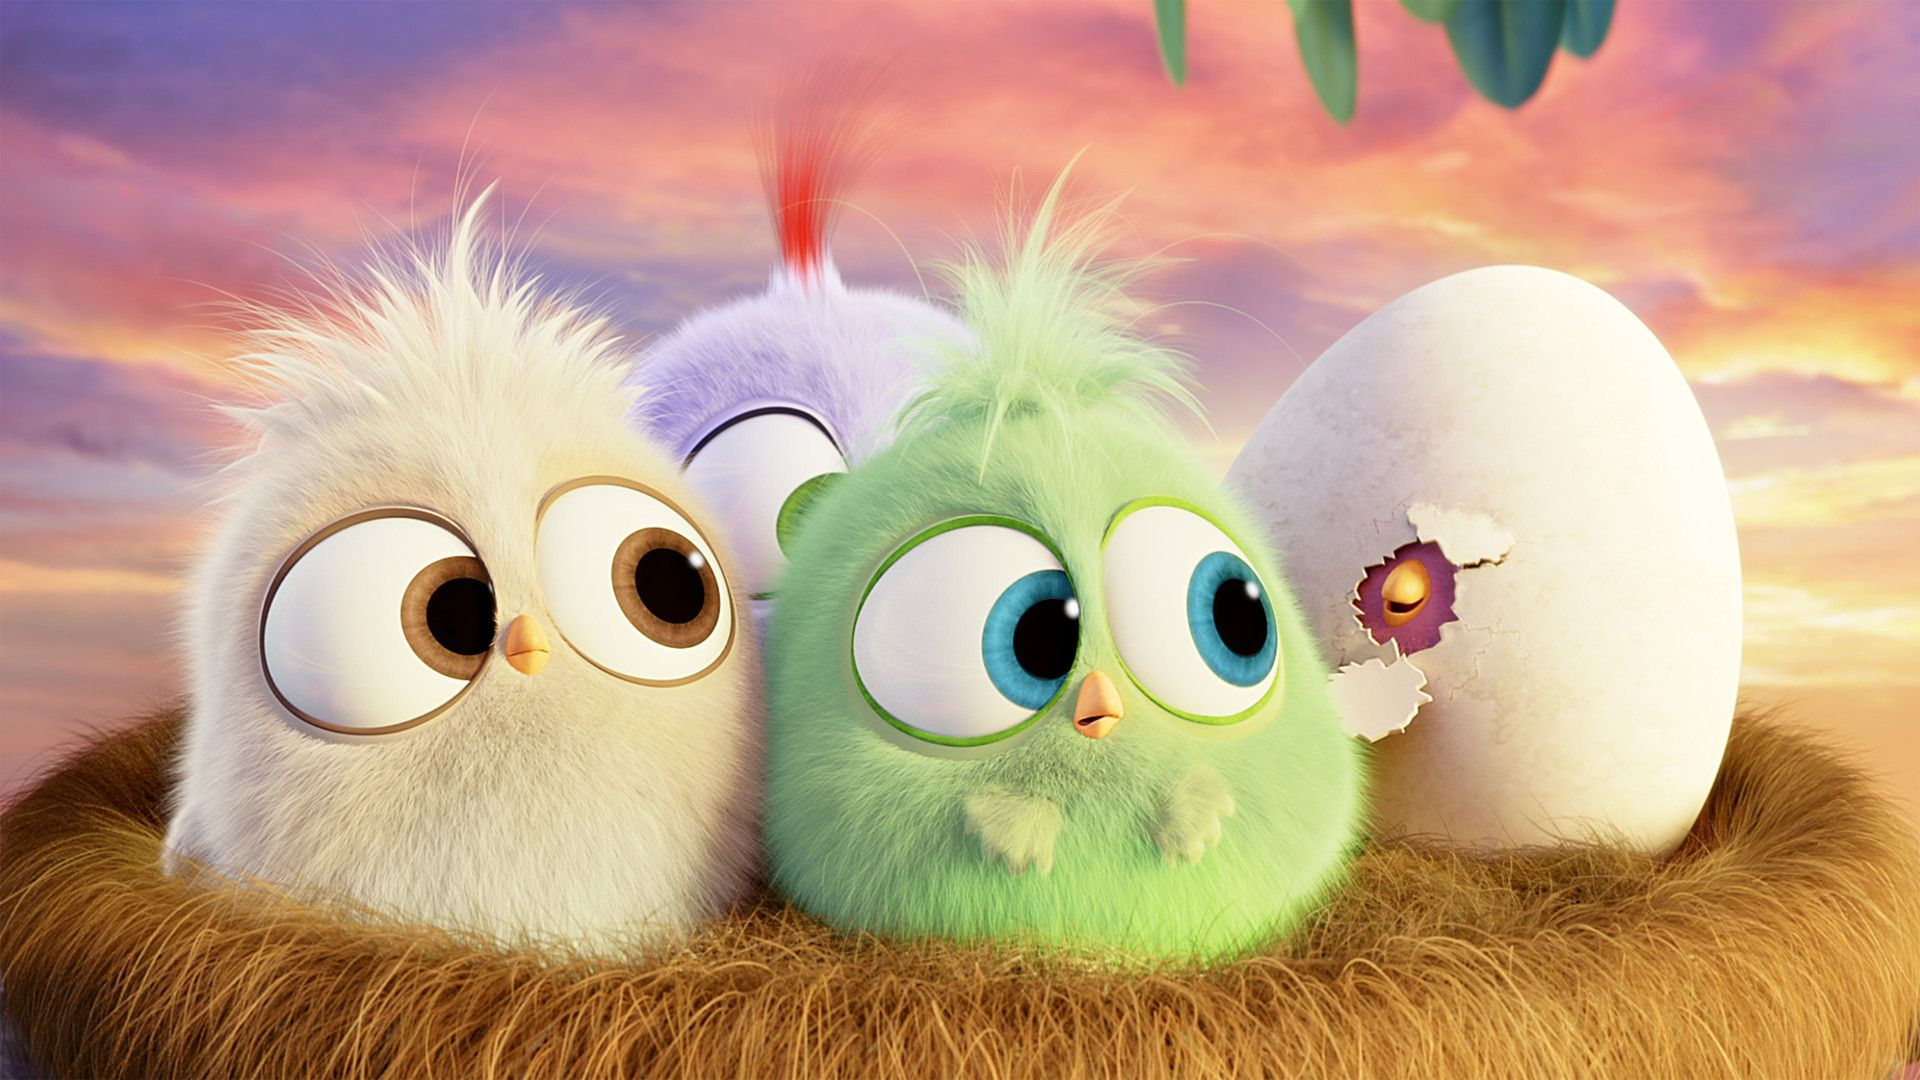 Hatchlings Angry Birds Hd Wallpaper 1920x1080 Need Iphone 6s Plus Wallpaper Background For Iphone6splu Angry Birds Bird Wallpaper Cartoon Wallpaper Hd